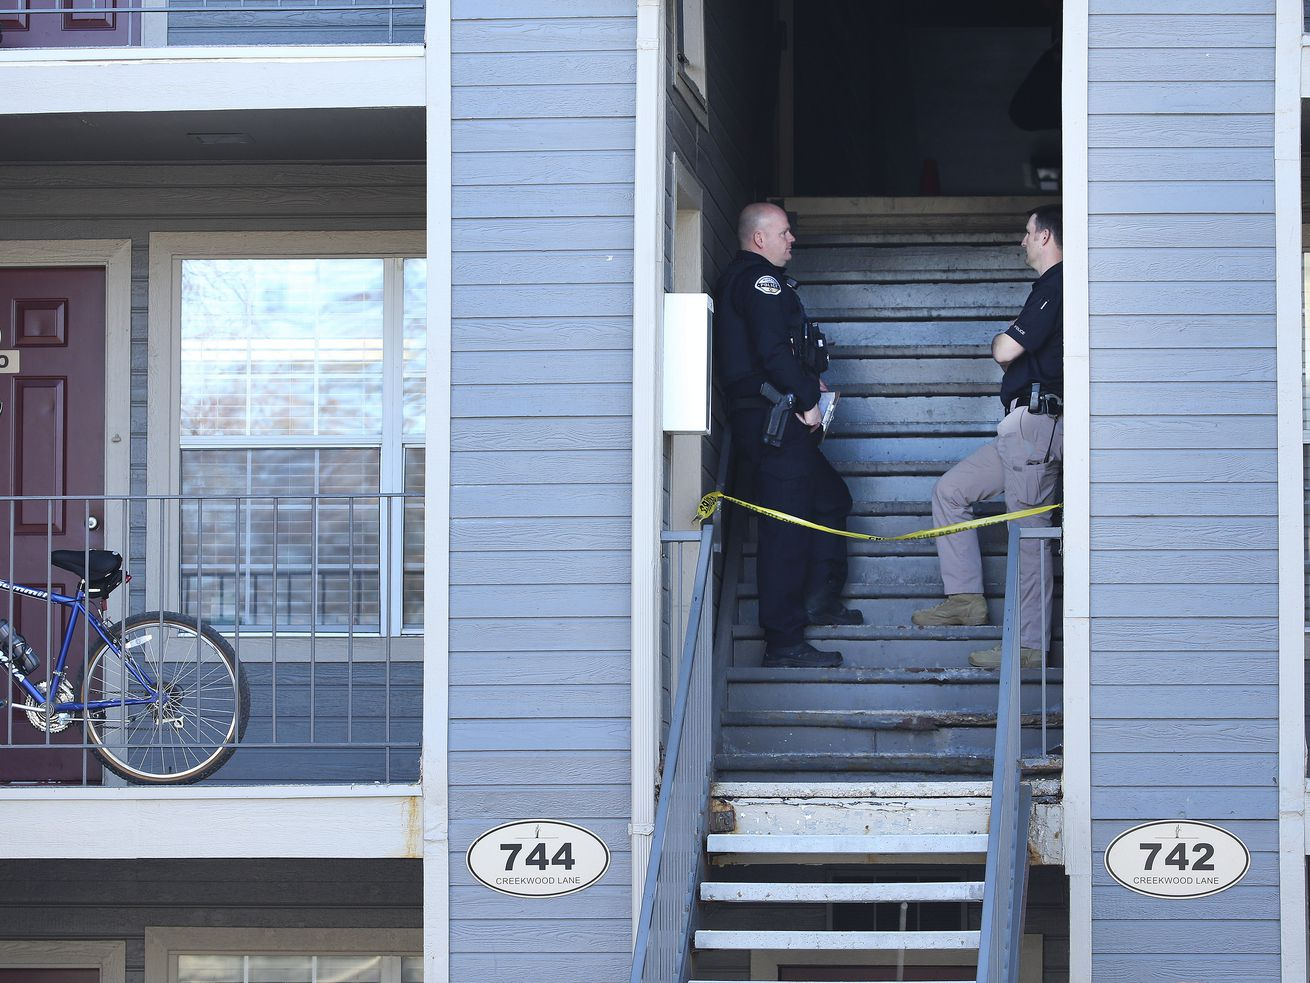 Murray police and West Valley police investigate an officer-involved shooting at the Stillwater Apartments at 744 E. Creekwood Lane in Murray on Thursday, March 5, 2020. Officials say a woman with a gun was shot by aMurray police officer.